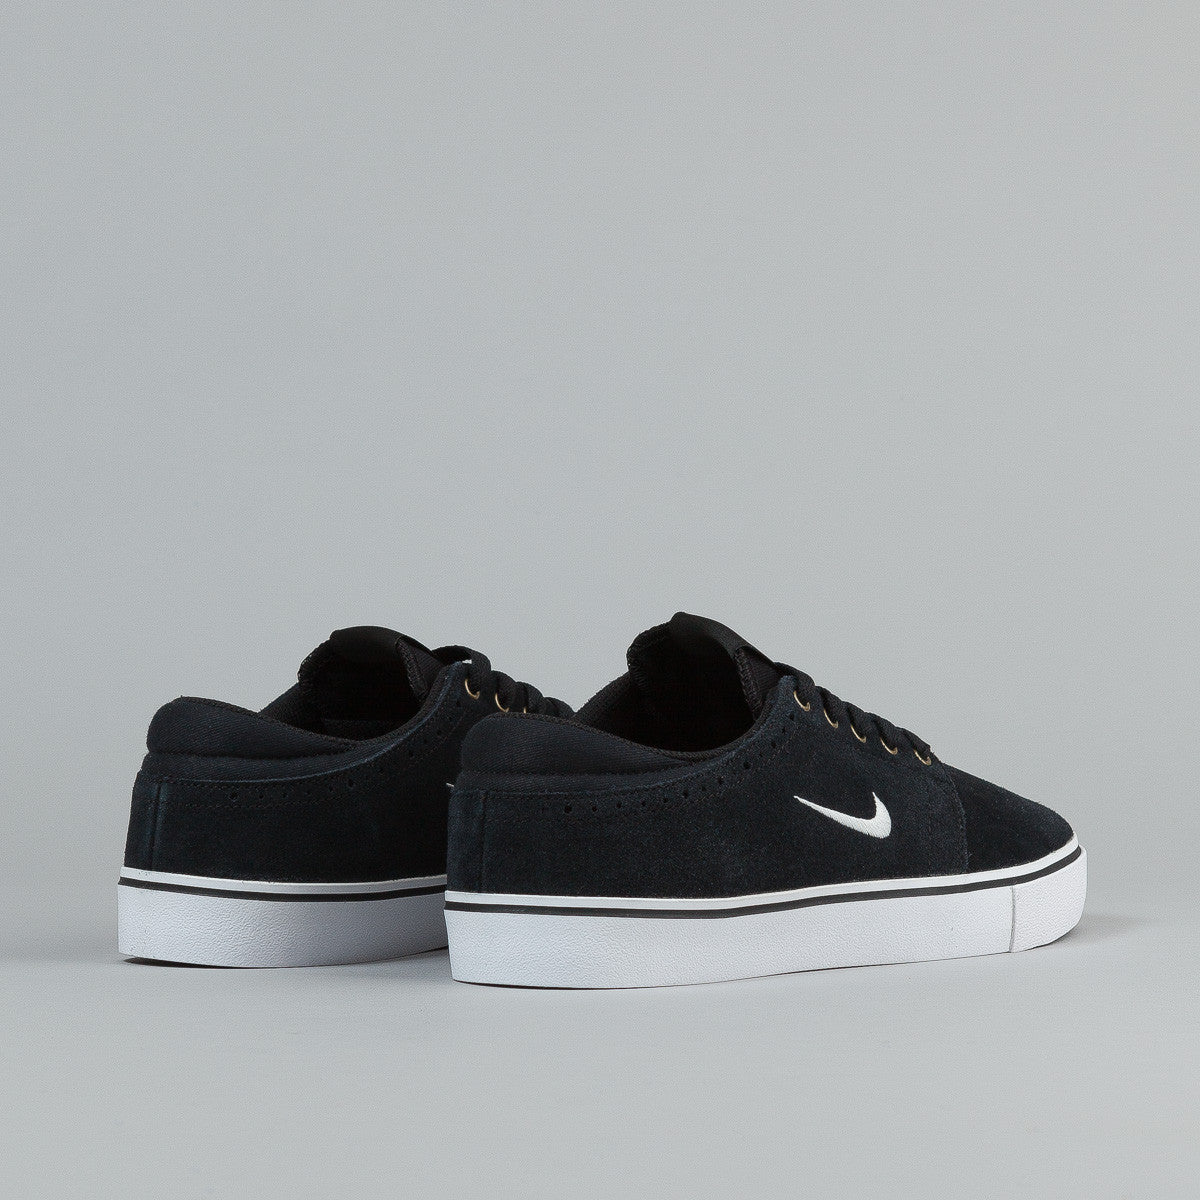 Nike SB Team Edition 2 Black / Swan - Gum Dark Brown